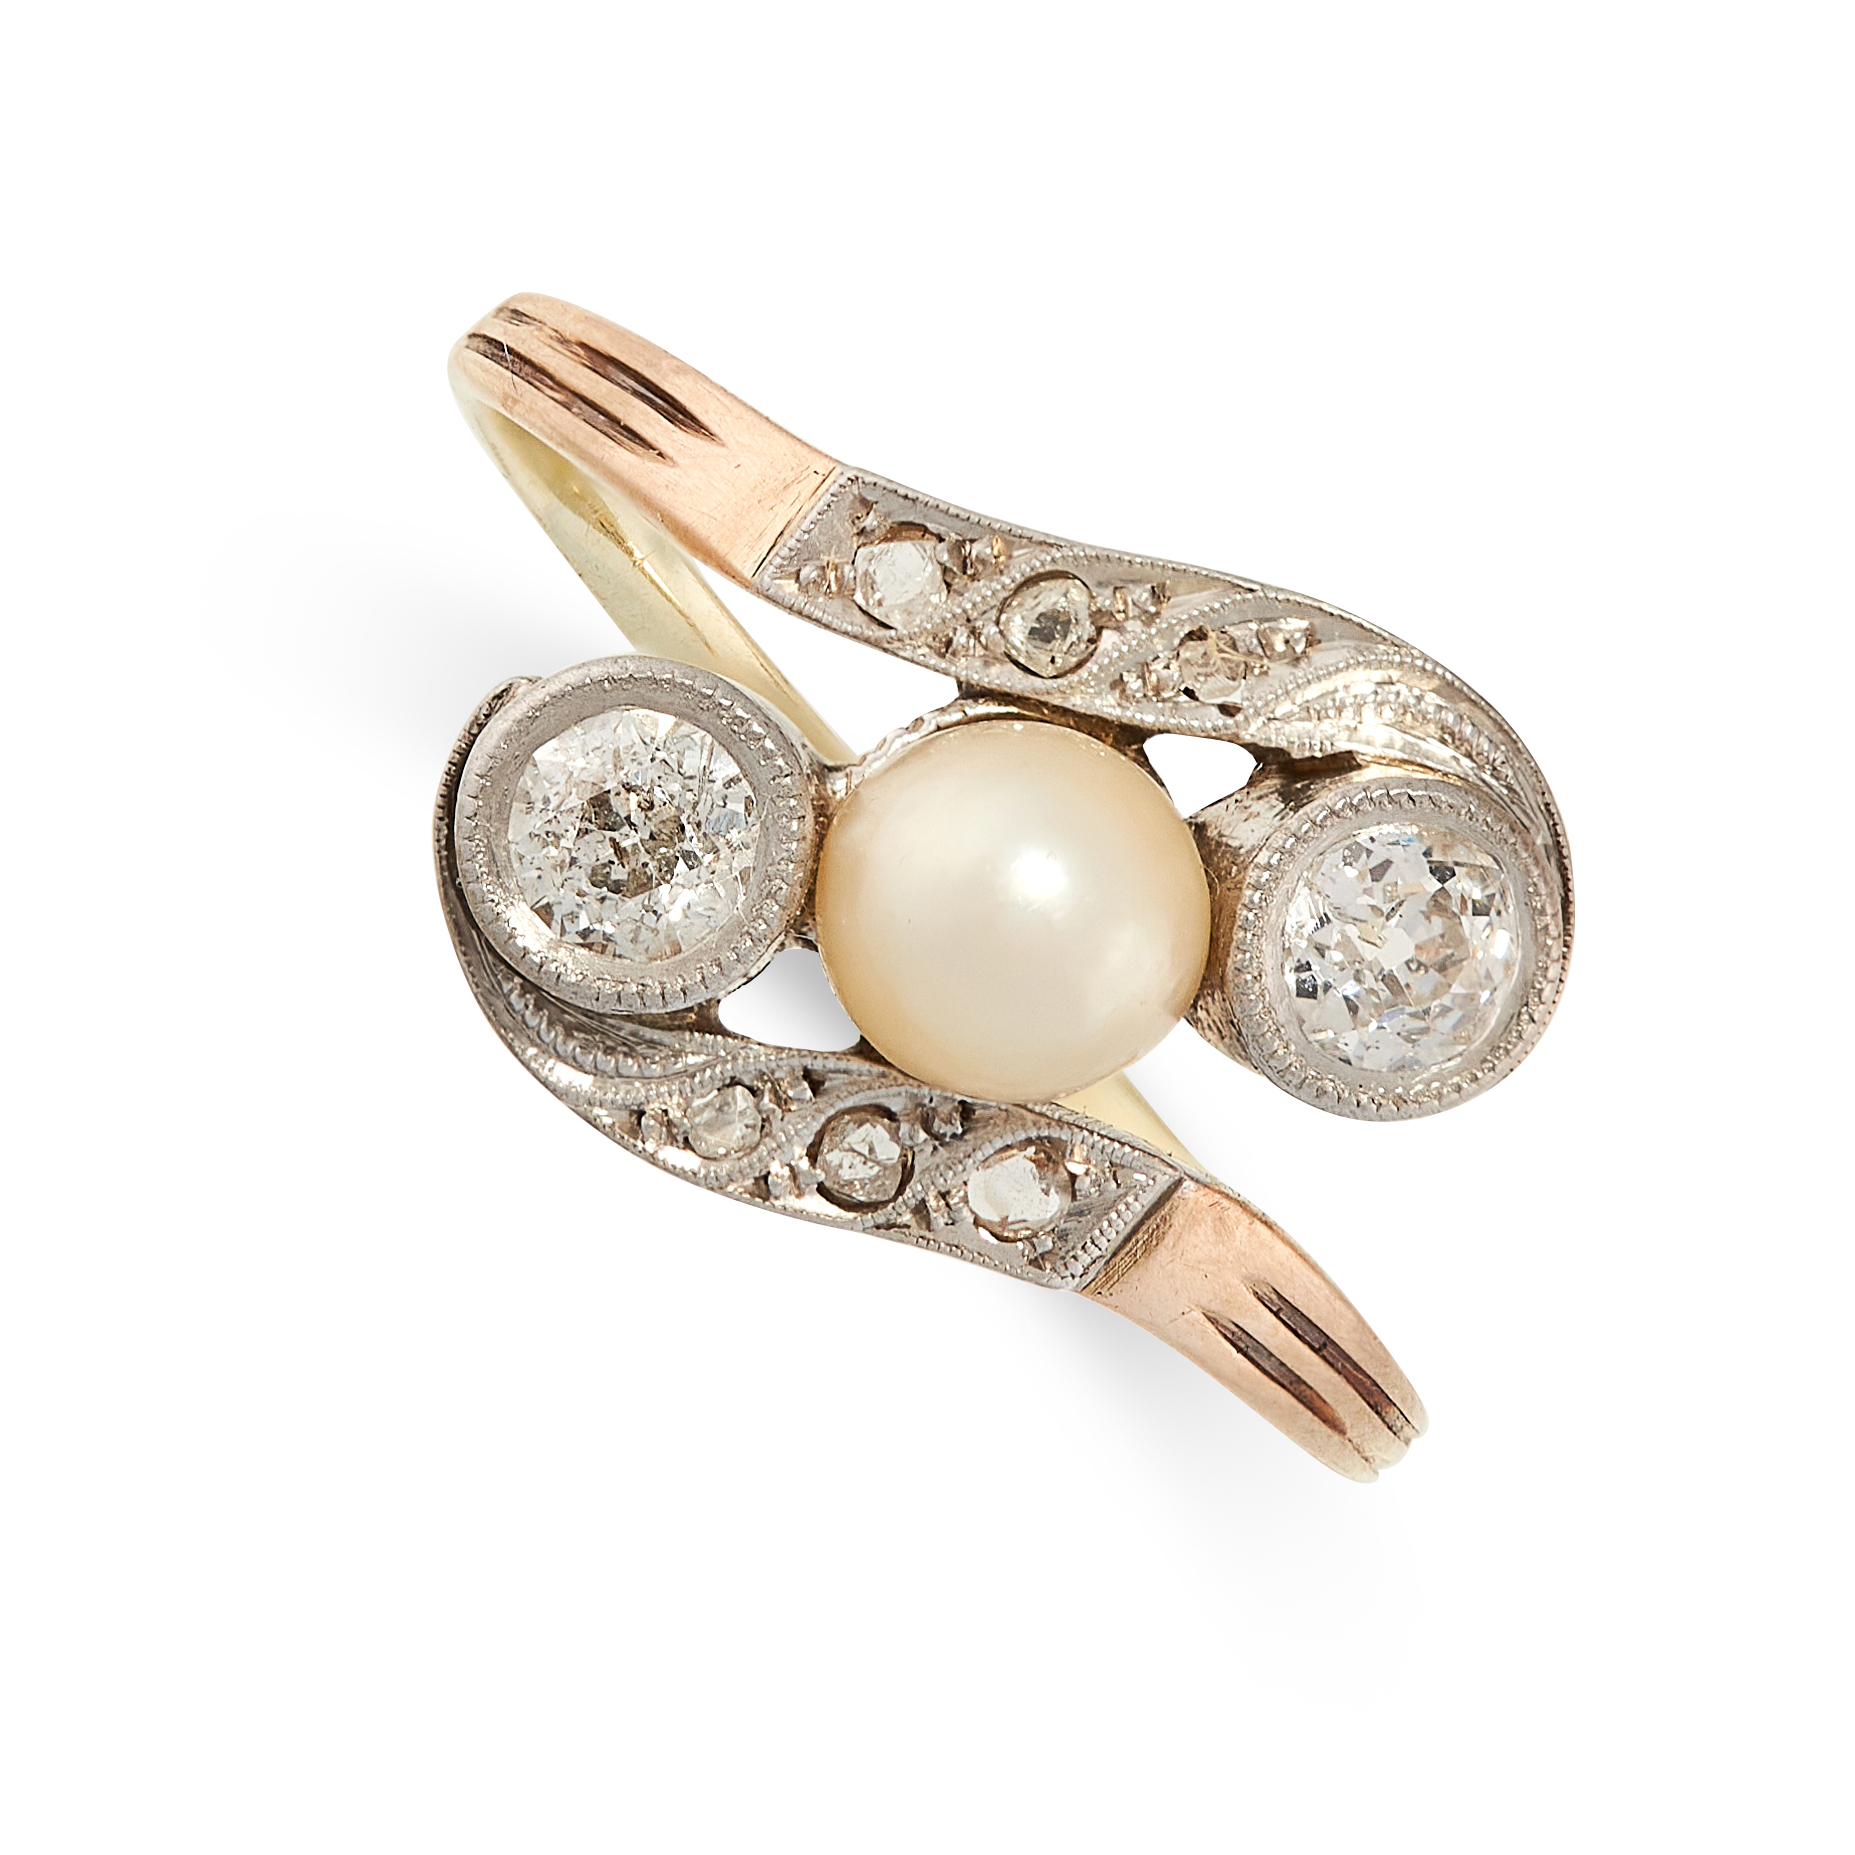 A PEARL AND DIAMOND DRESS RING, CIRCA 1940 in 14ct yellow gold, of twisted design, set with a